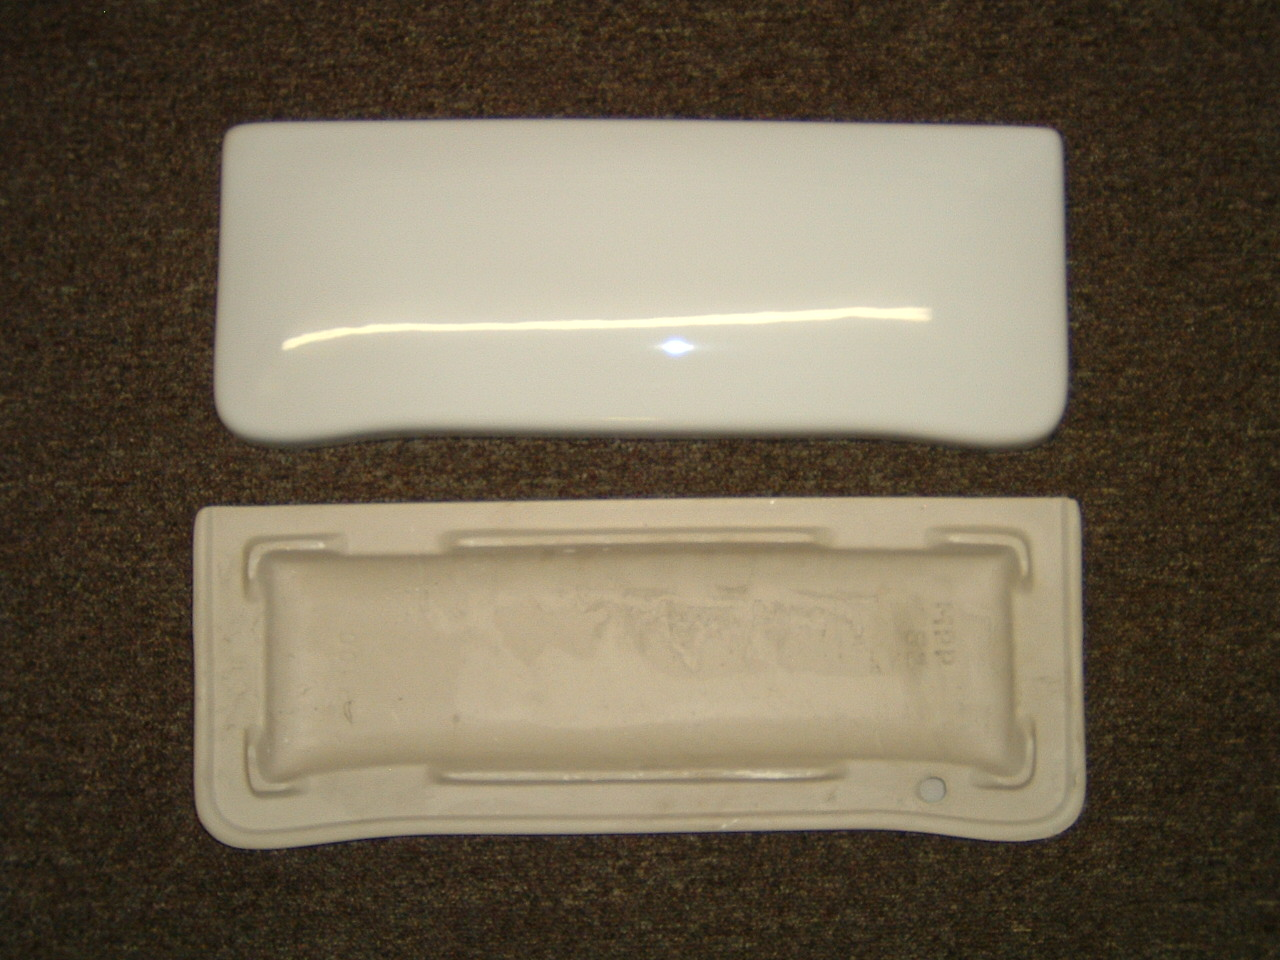 Mansfield Toilet Parts Tank Lid White For Model 35 Call Before ...